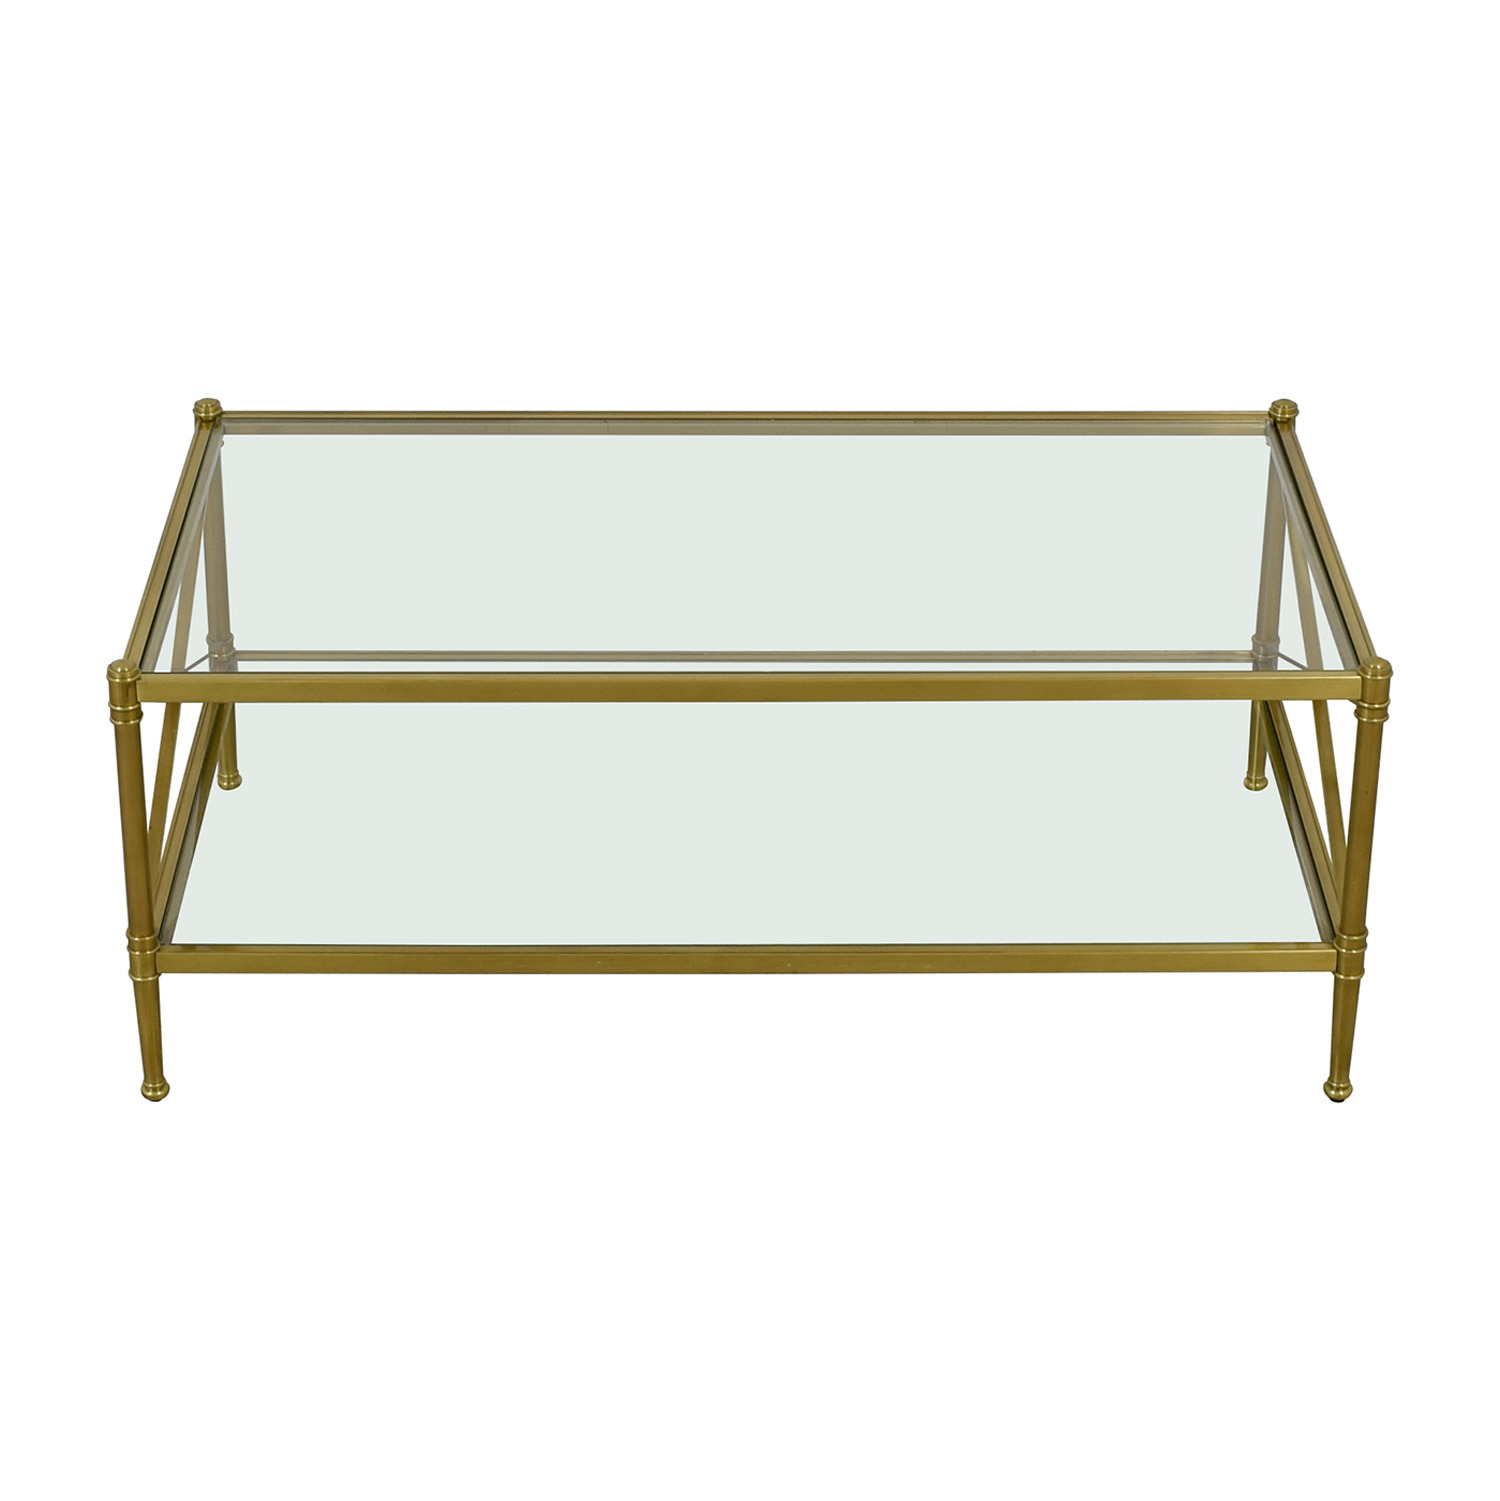 Restoration Hardware Restoration Hardware Coffee Table nyc